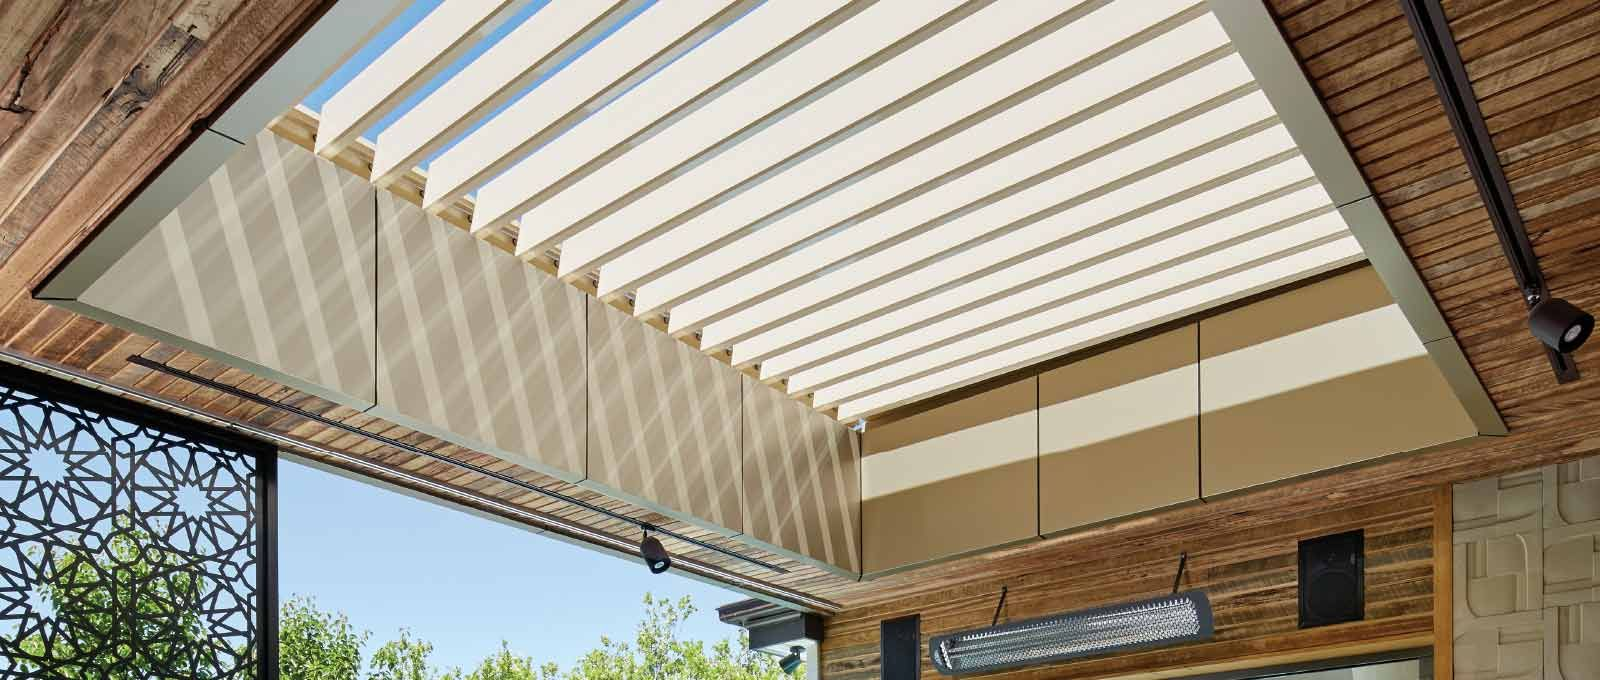 Take Control Of The Weather With The Innovative Stratco Sunroof Opening  Louvre Roof Verandah, Patio Or Carport.